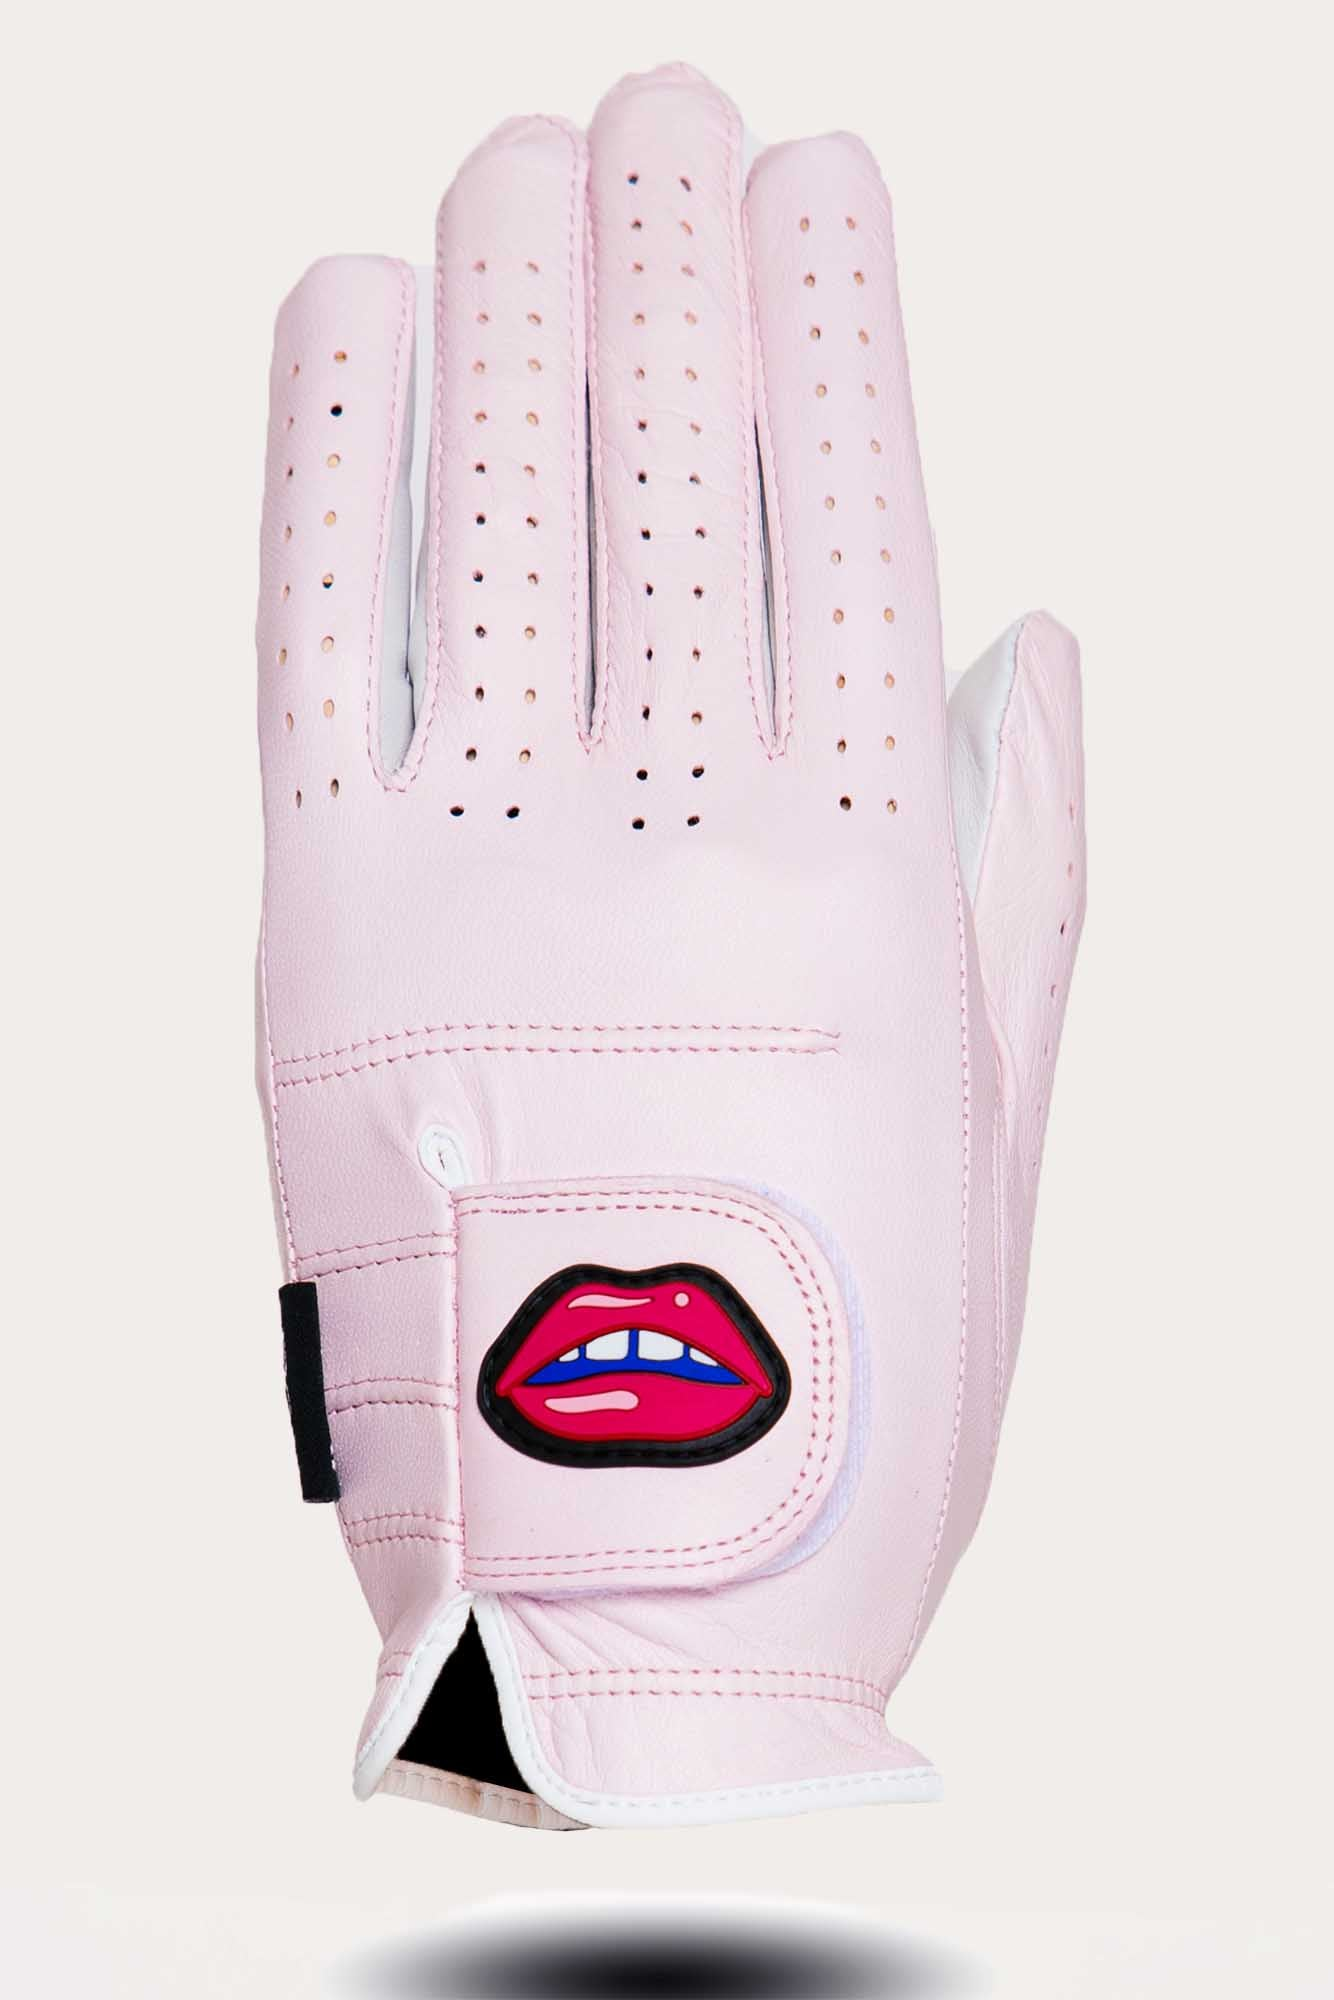 FORAY x ASHER Golf Glove - Pink | left   m